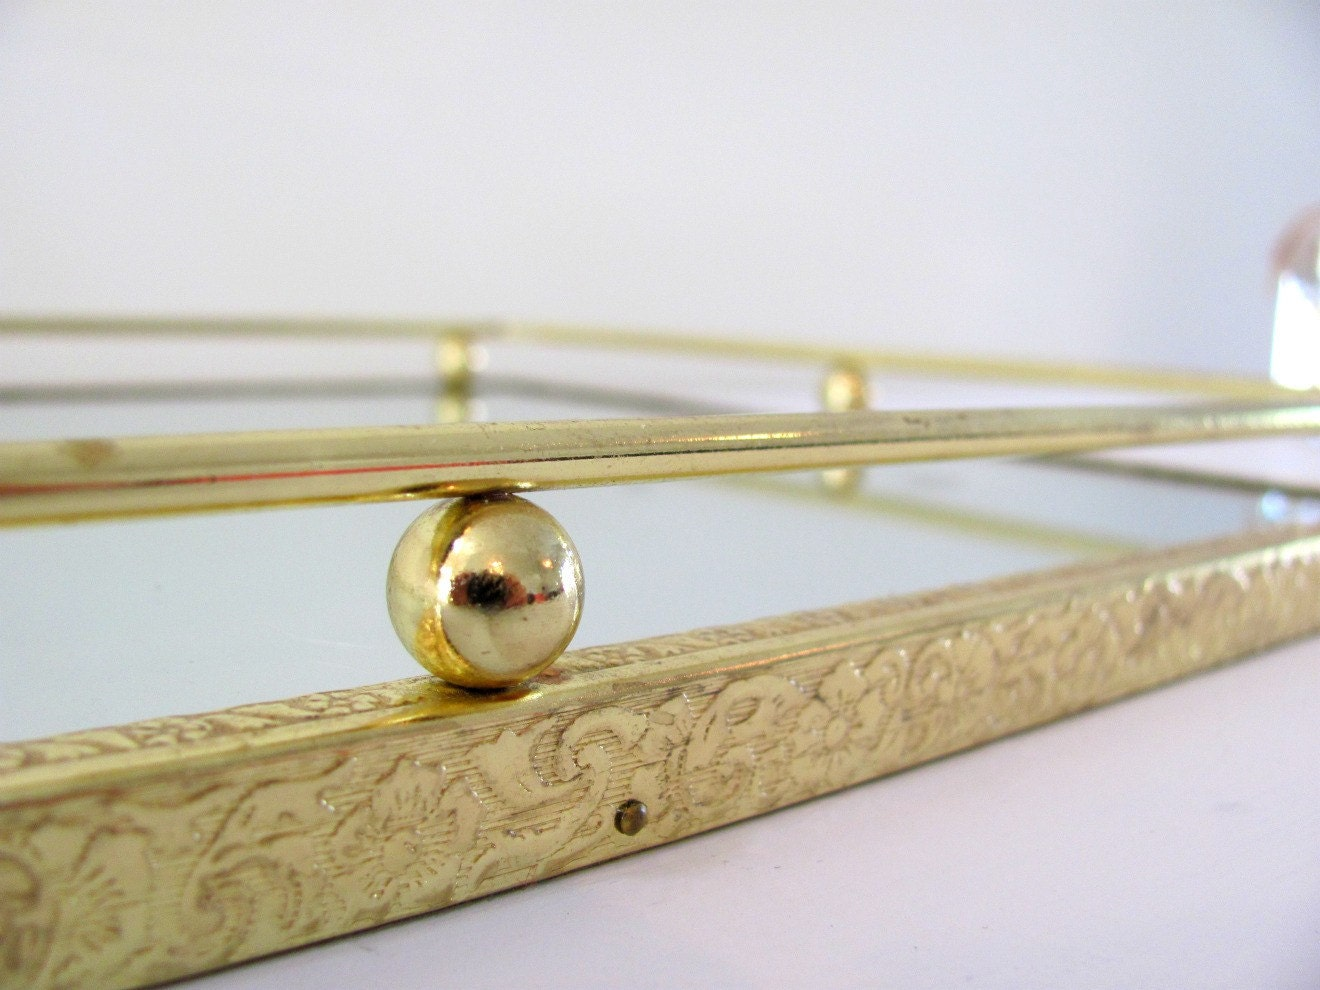 Vintage mirror vanity tray with gold floral frame